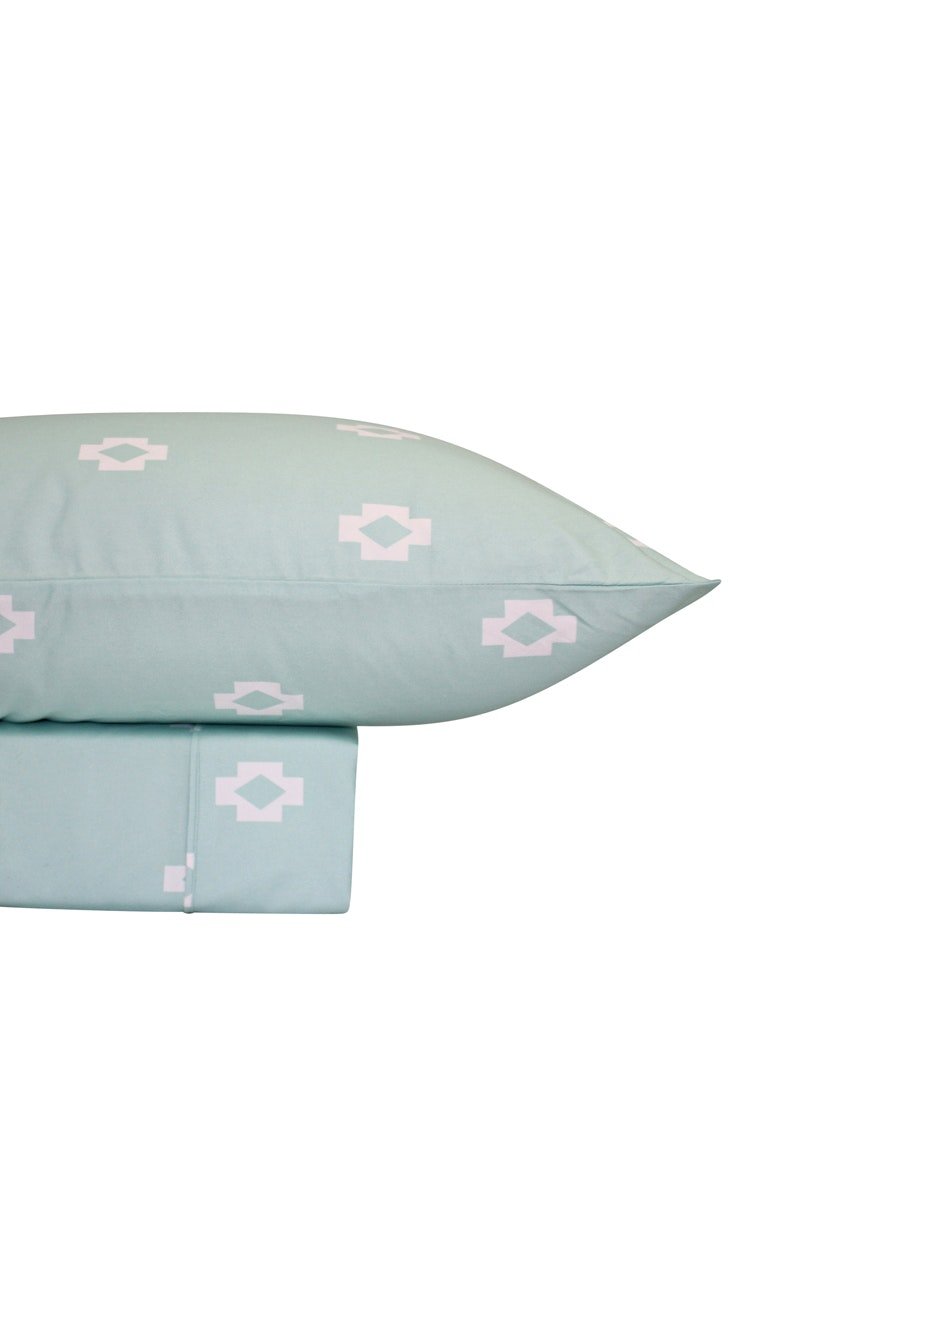 Thermal Flannel Sheet Sets - Tribal Design - Bay Blue - Queen Bed